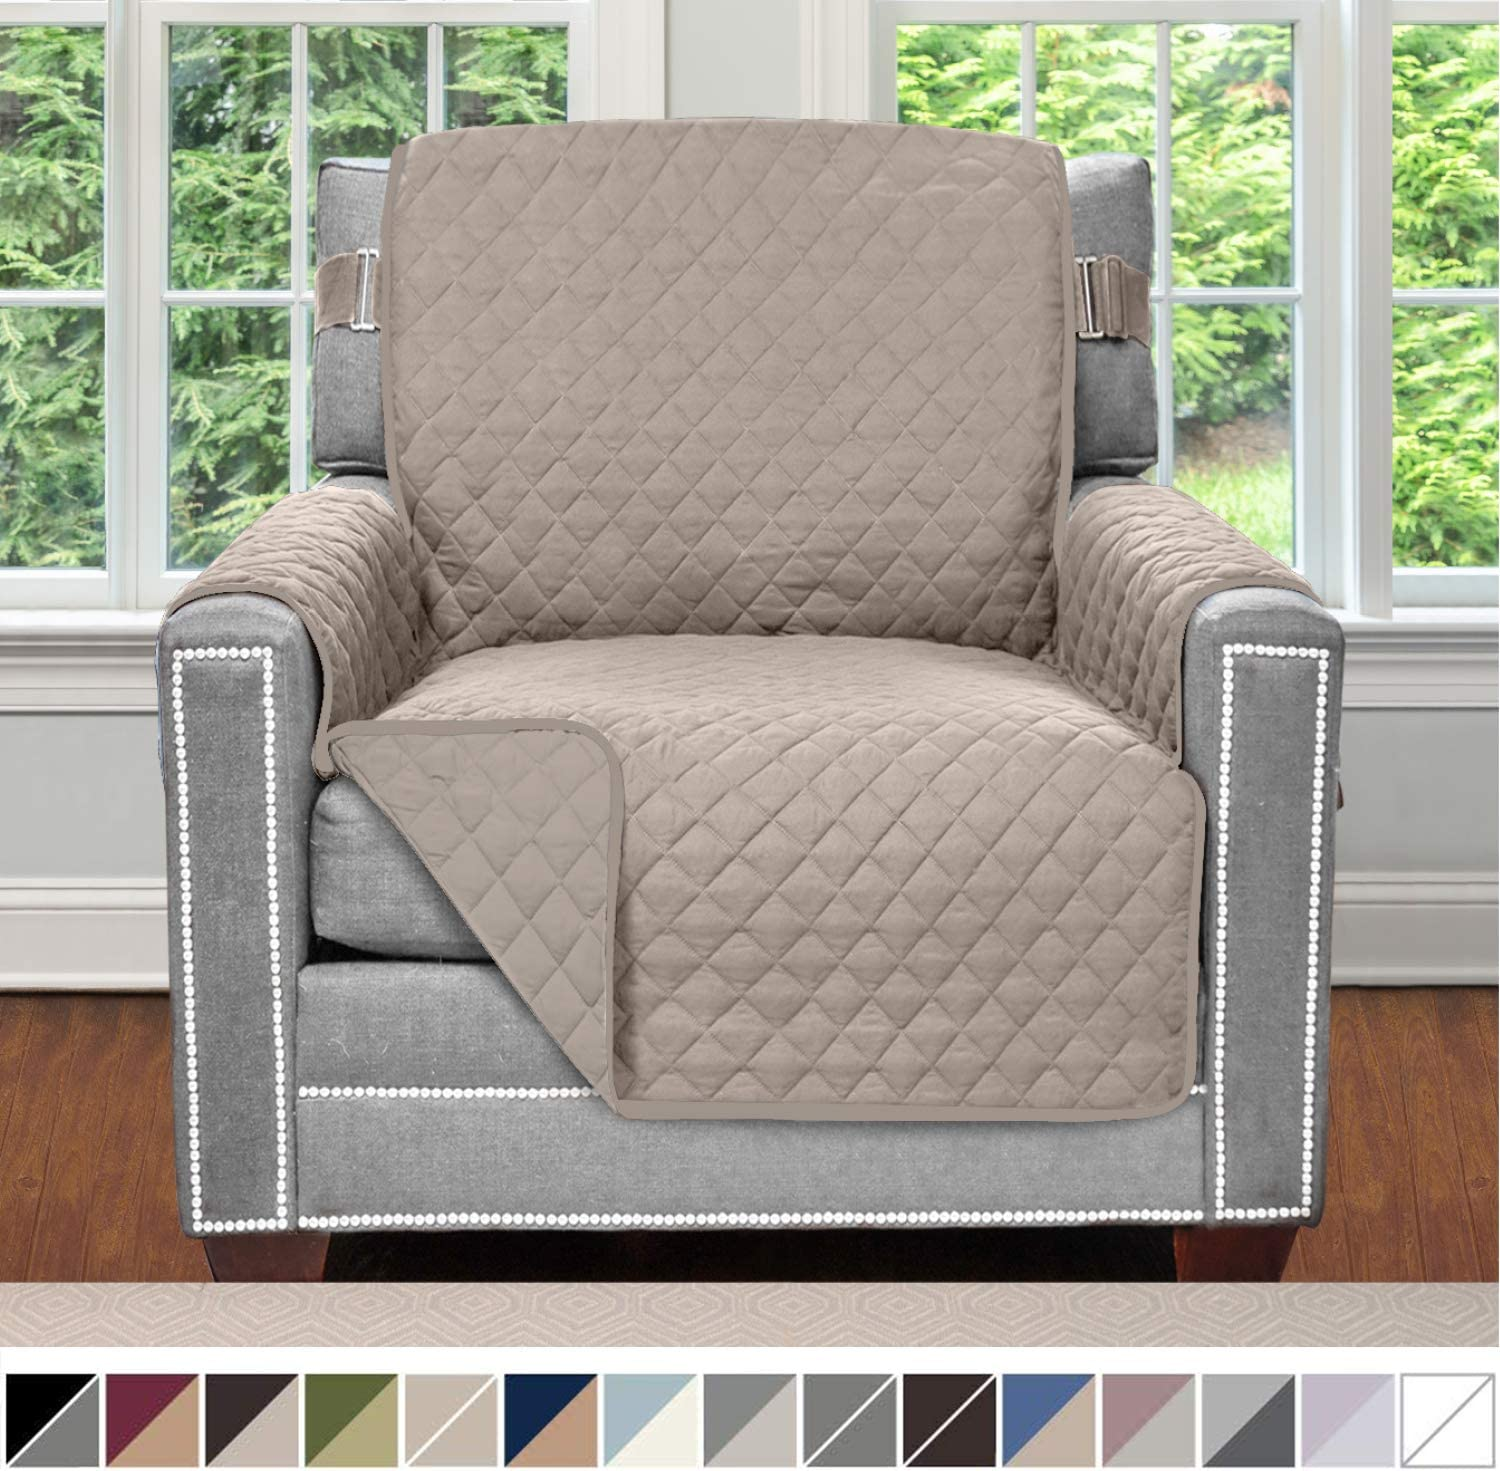 Sofa Shield Original Patent Pending Reversible Chair Protector for Seat Width up to 23 Inch, Furniture Slipcover, 2 Inch Strap, Chairs Slip Cover Throw for Pet Dogs, Cats, Armchair, Light Taupe: Home & Kitchen